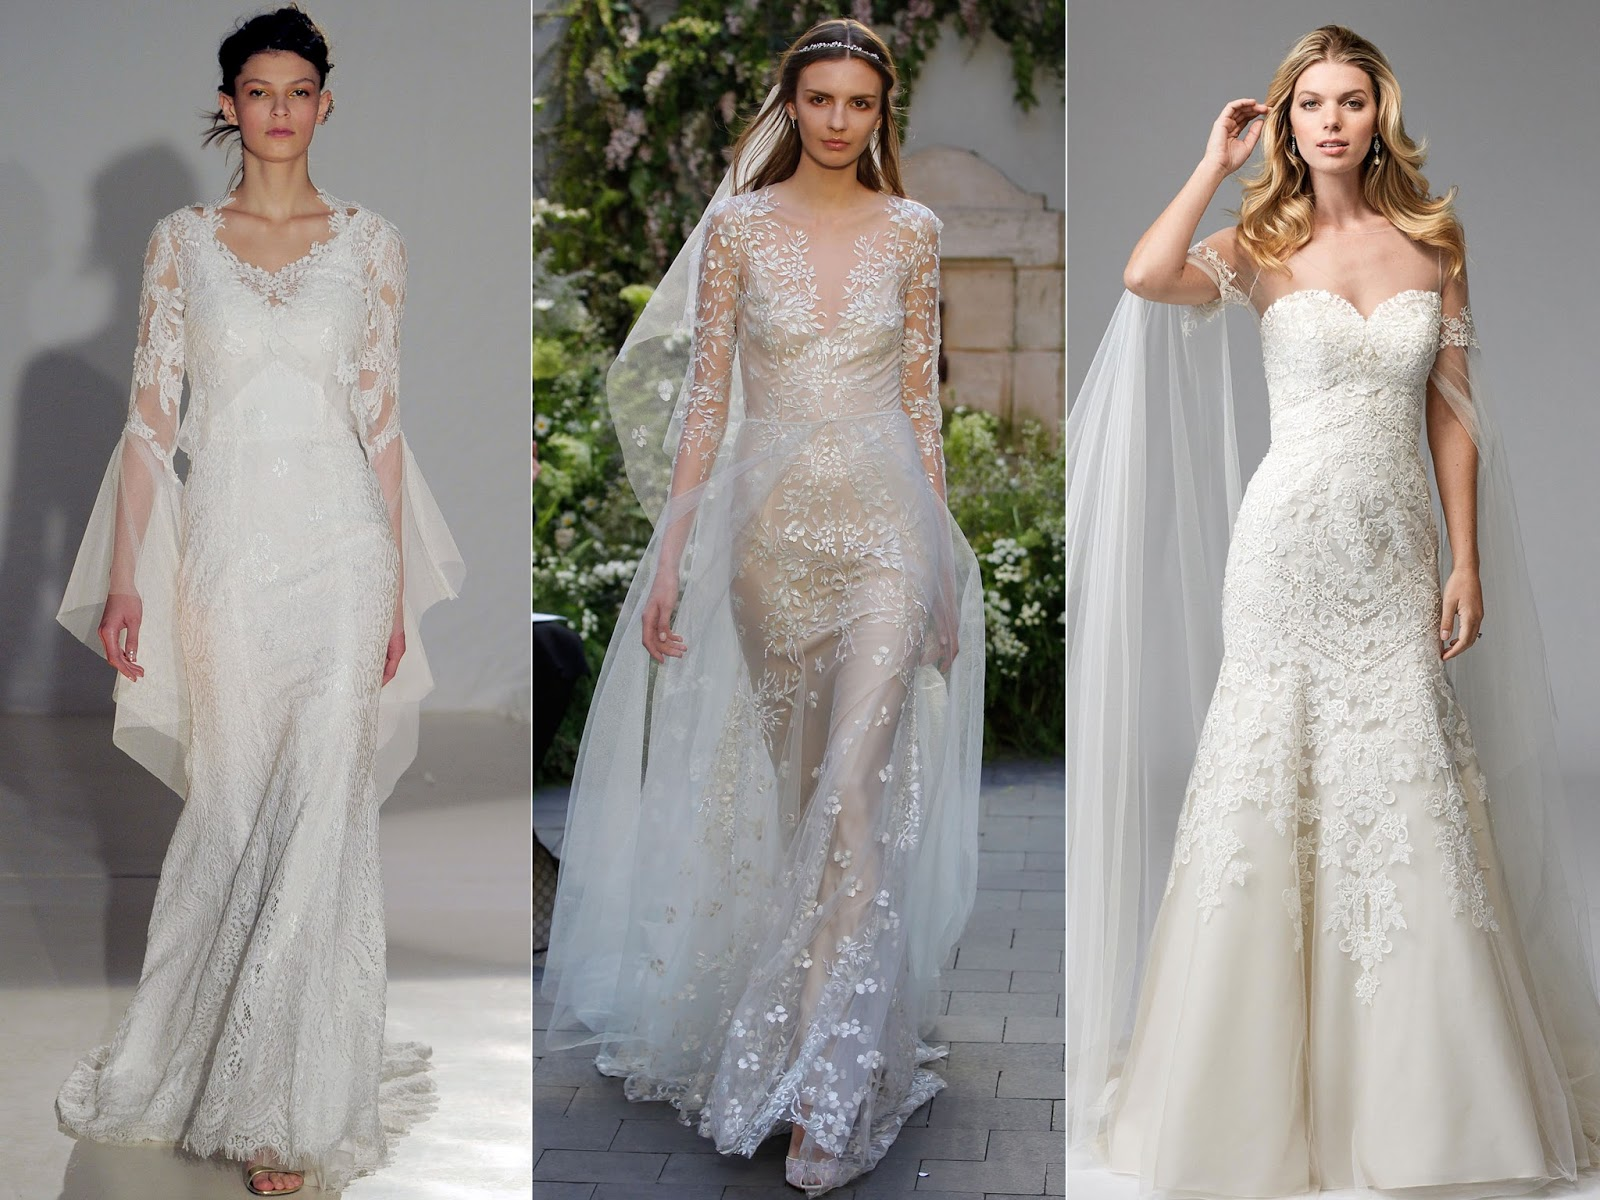 Edressit fashion blog find the perfect wedding dress for your body type along with finding the right gown for your body type there are a few other things that can help make your wedding dress shopping experience as easy as junglespirit Images